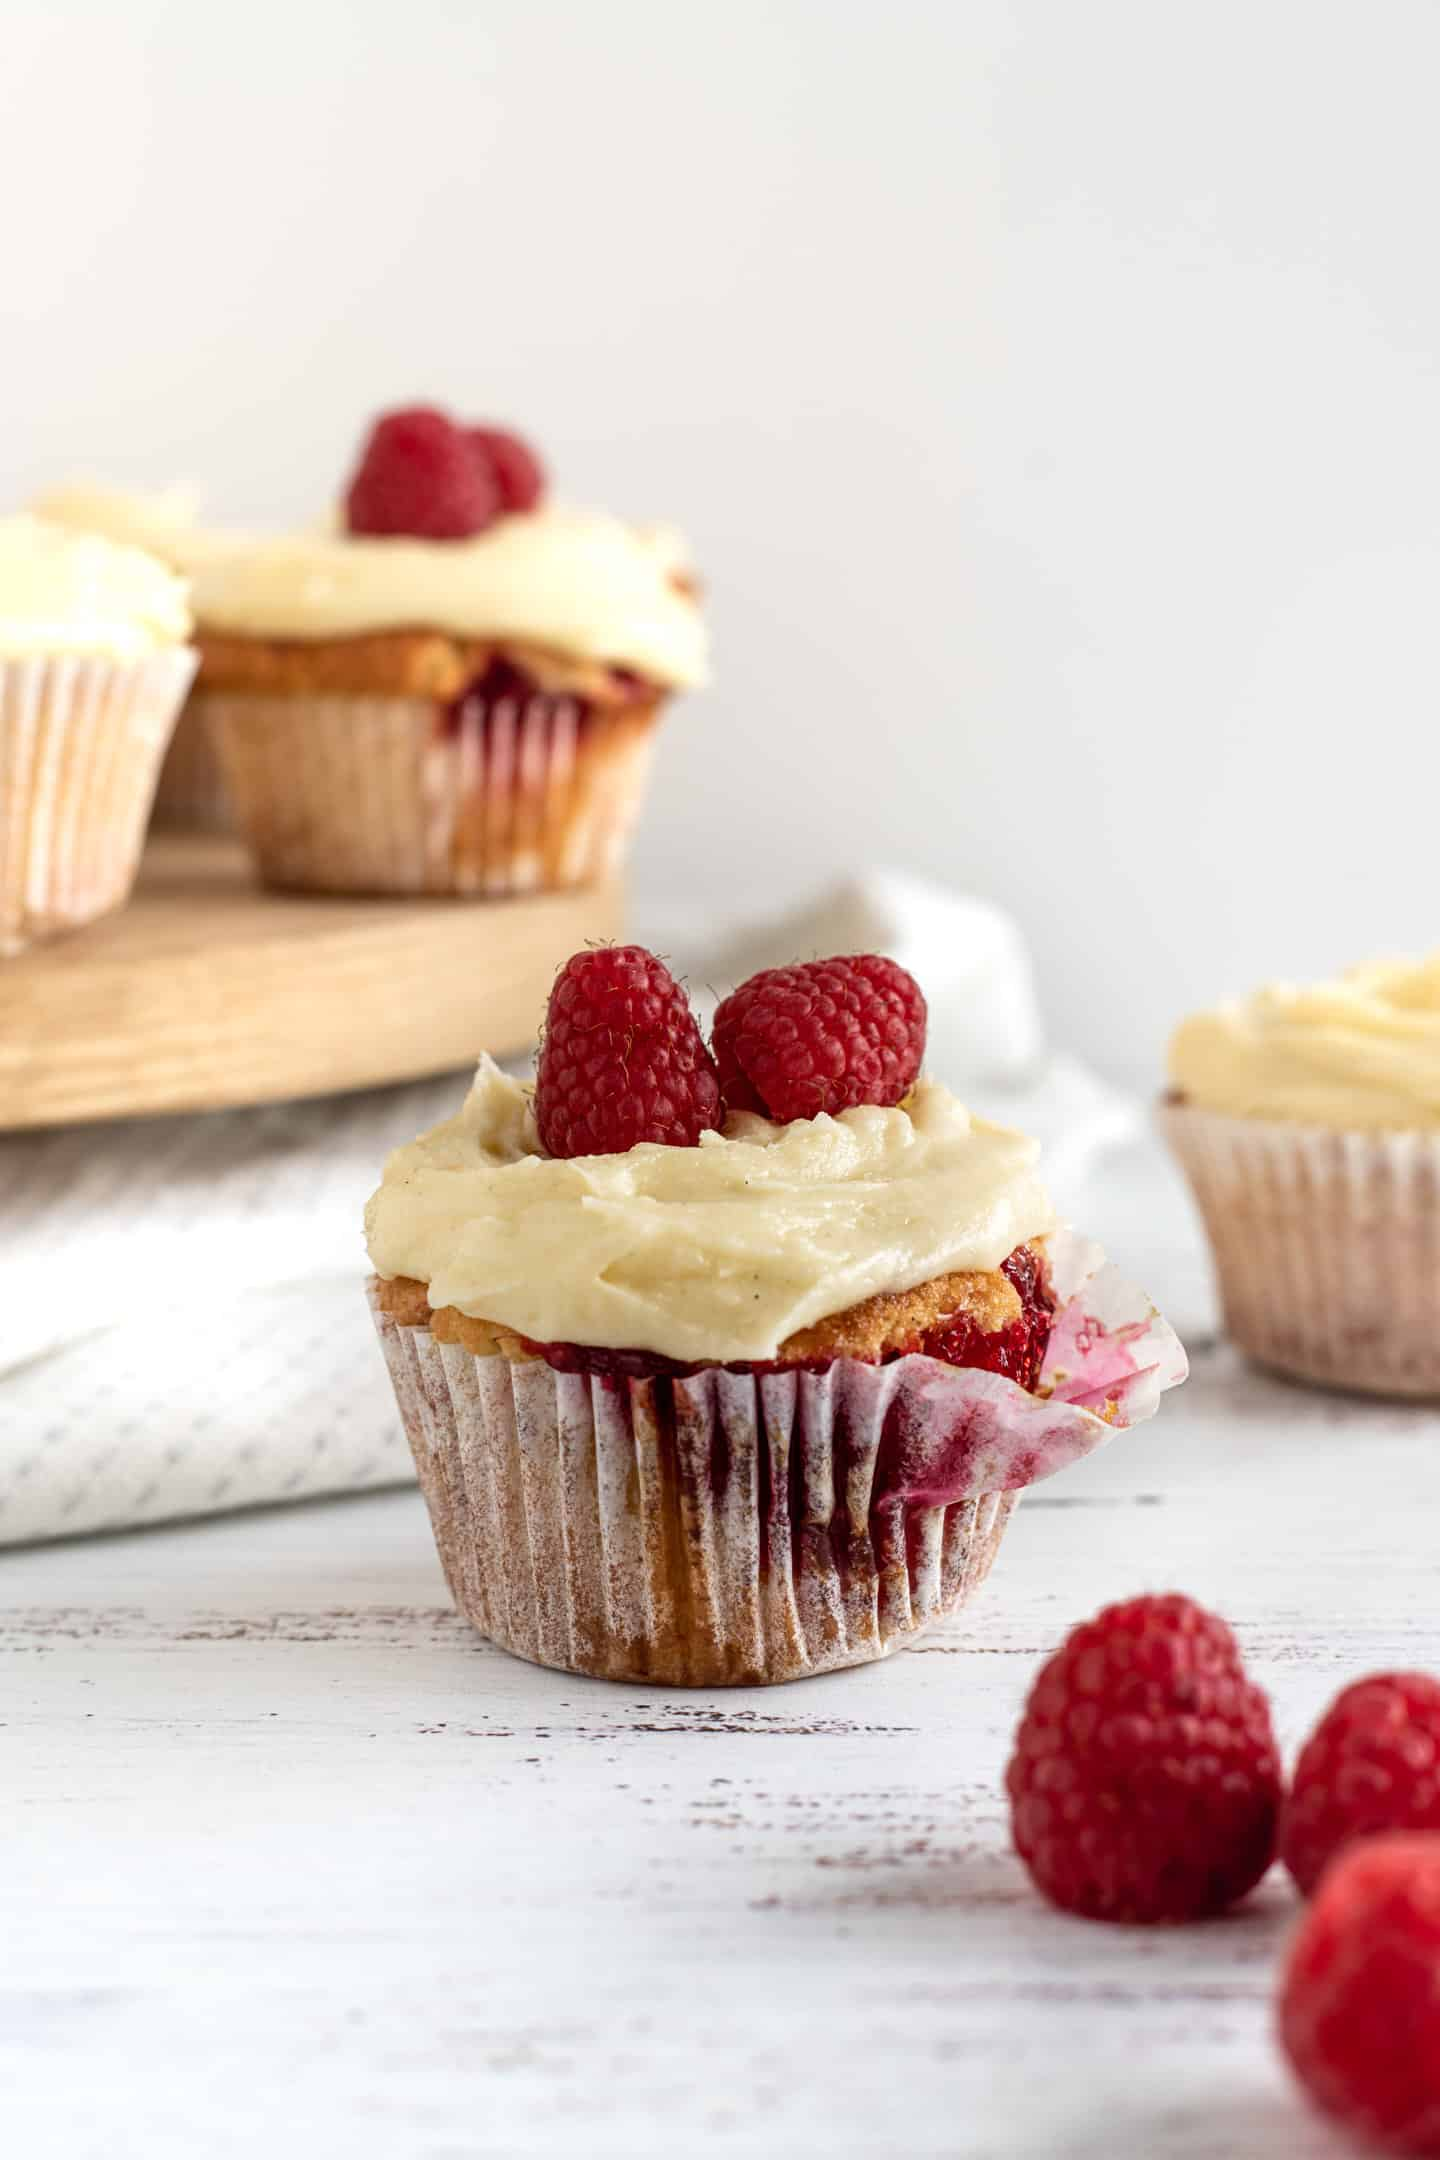 Cupcake with some buttercream and raspberries on top, on a wooden stand at the back